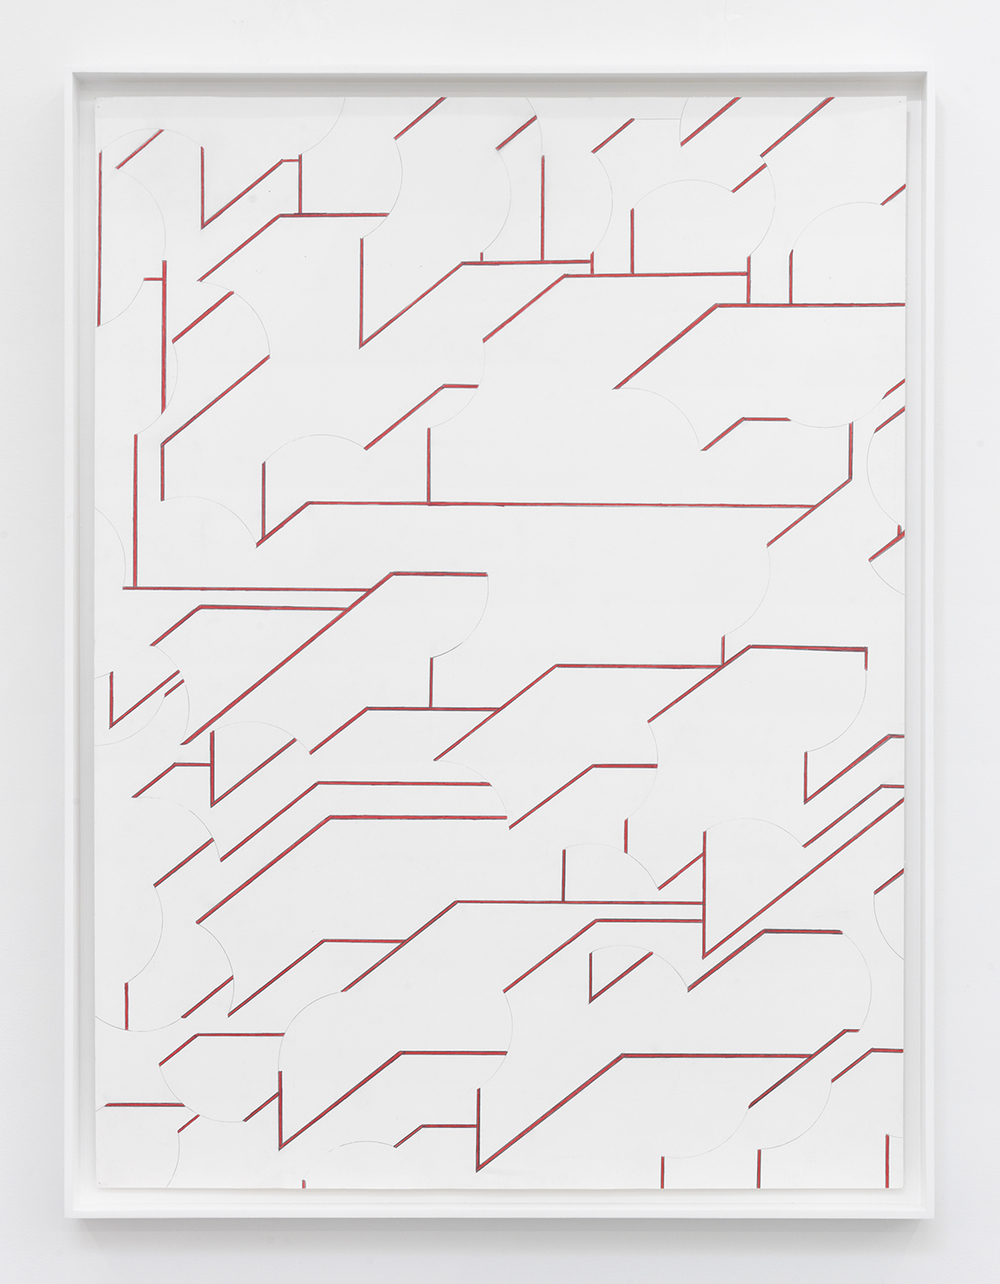 Miles Huston  Blank Verse, Red Line , 2012 Colored pencil on paper in artist frame 31.5 x 24 inches